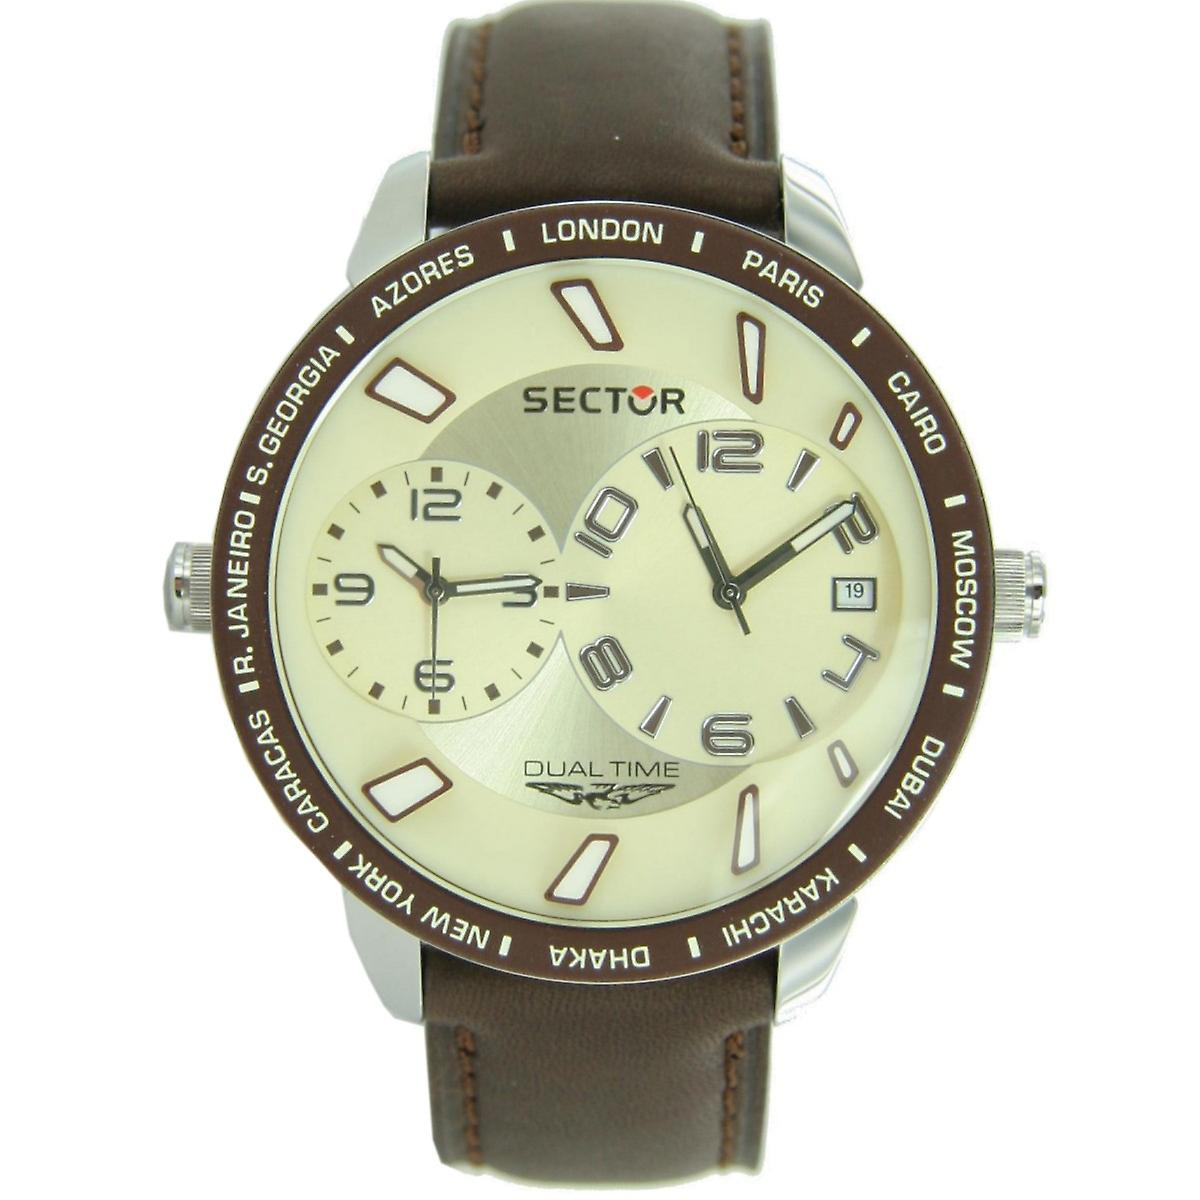 Sector men's watch wrist watch no limits dual time 400 - R3251119004